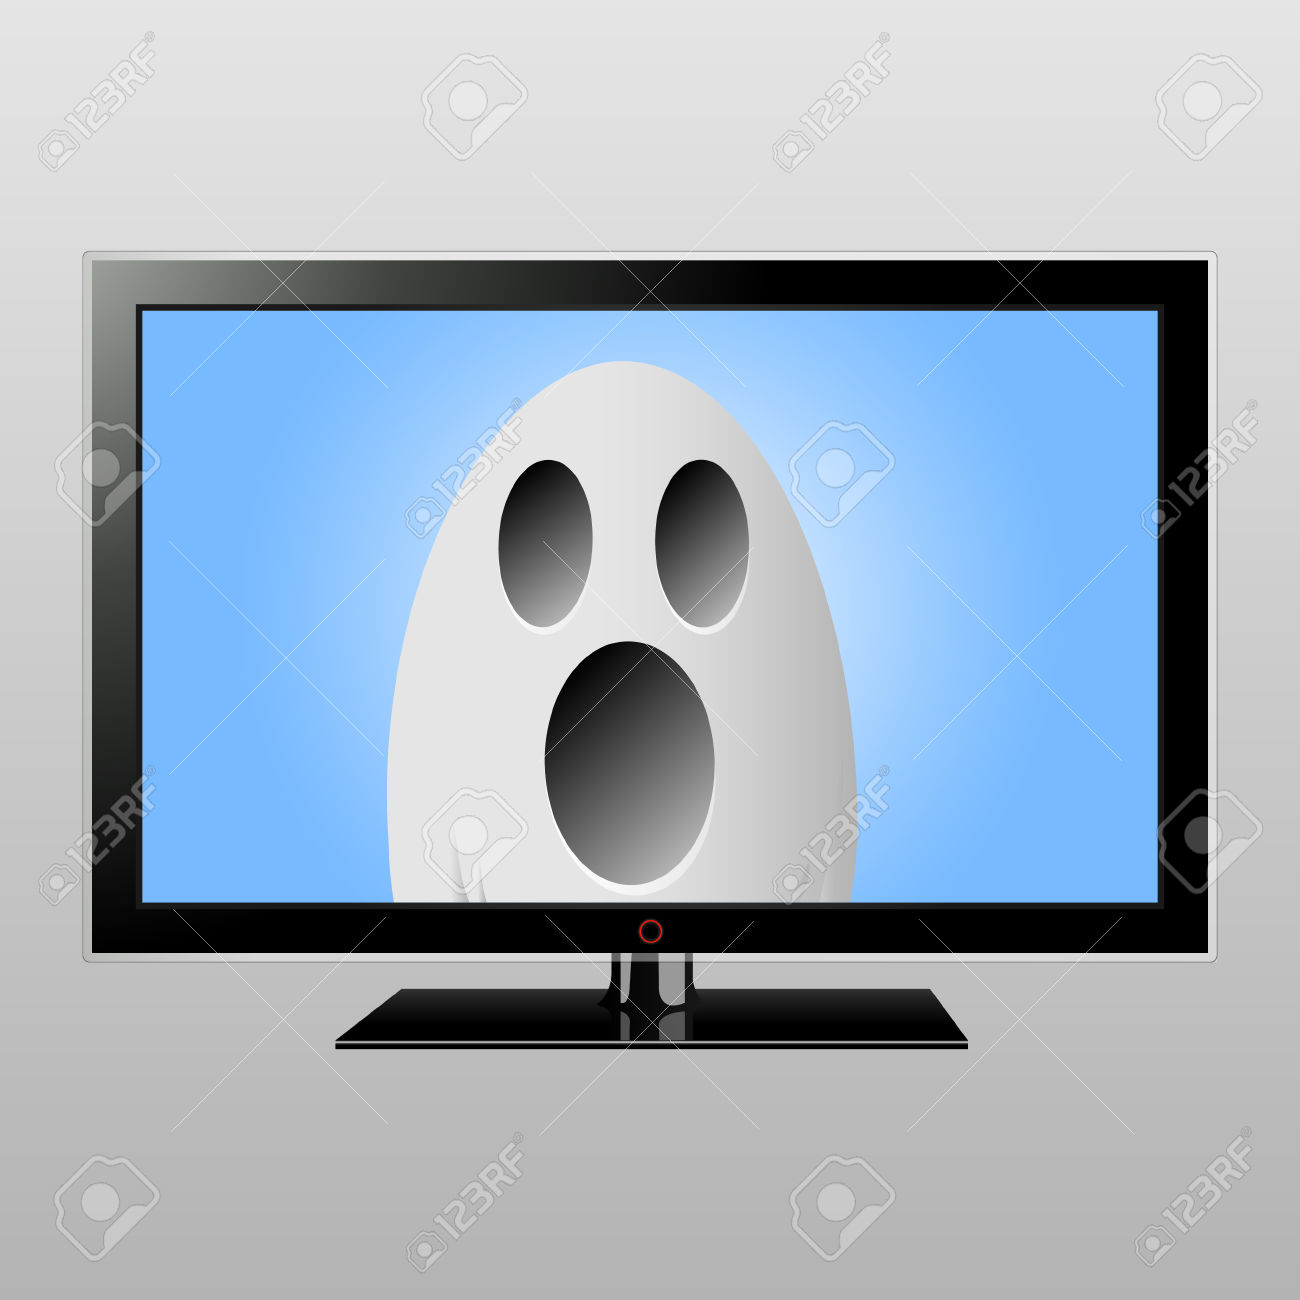 893 Television Static Stock Vector Illustration And Royalty Free.